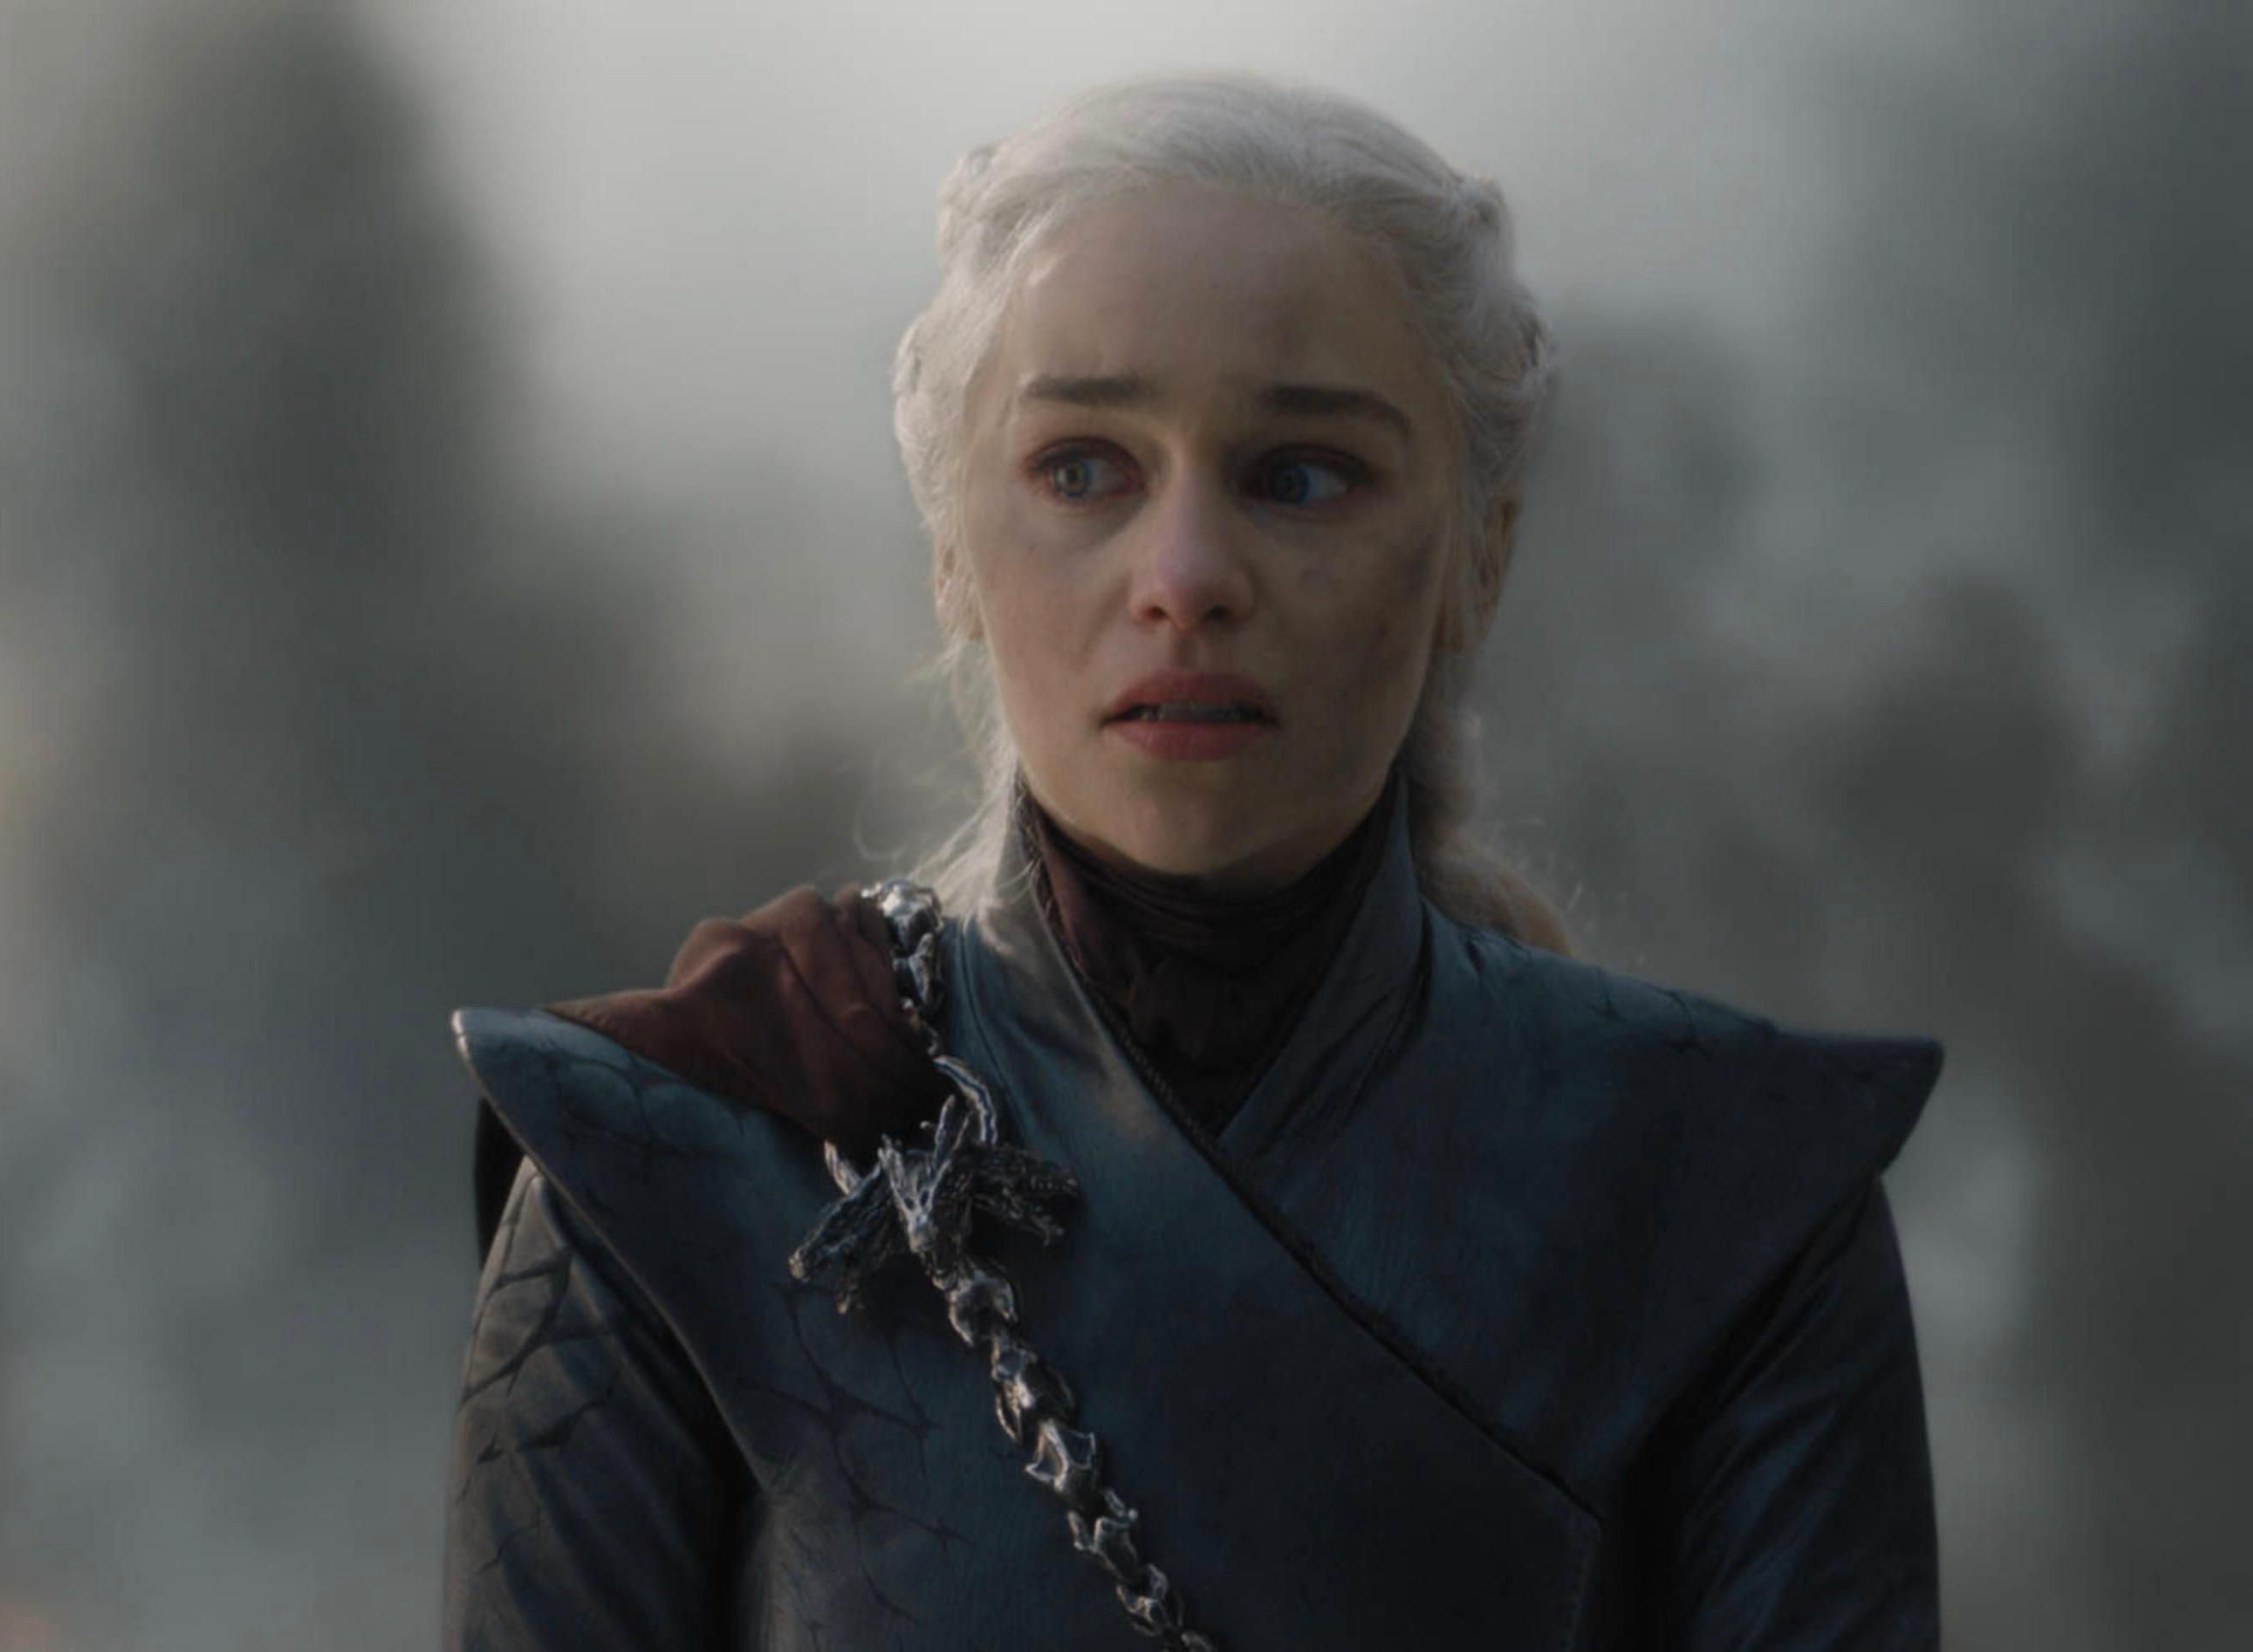 game-of-thrones-season-8-episode-5-daenerys-damanged-1